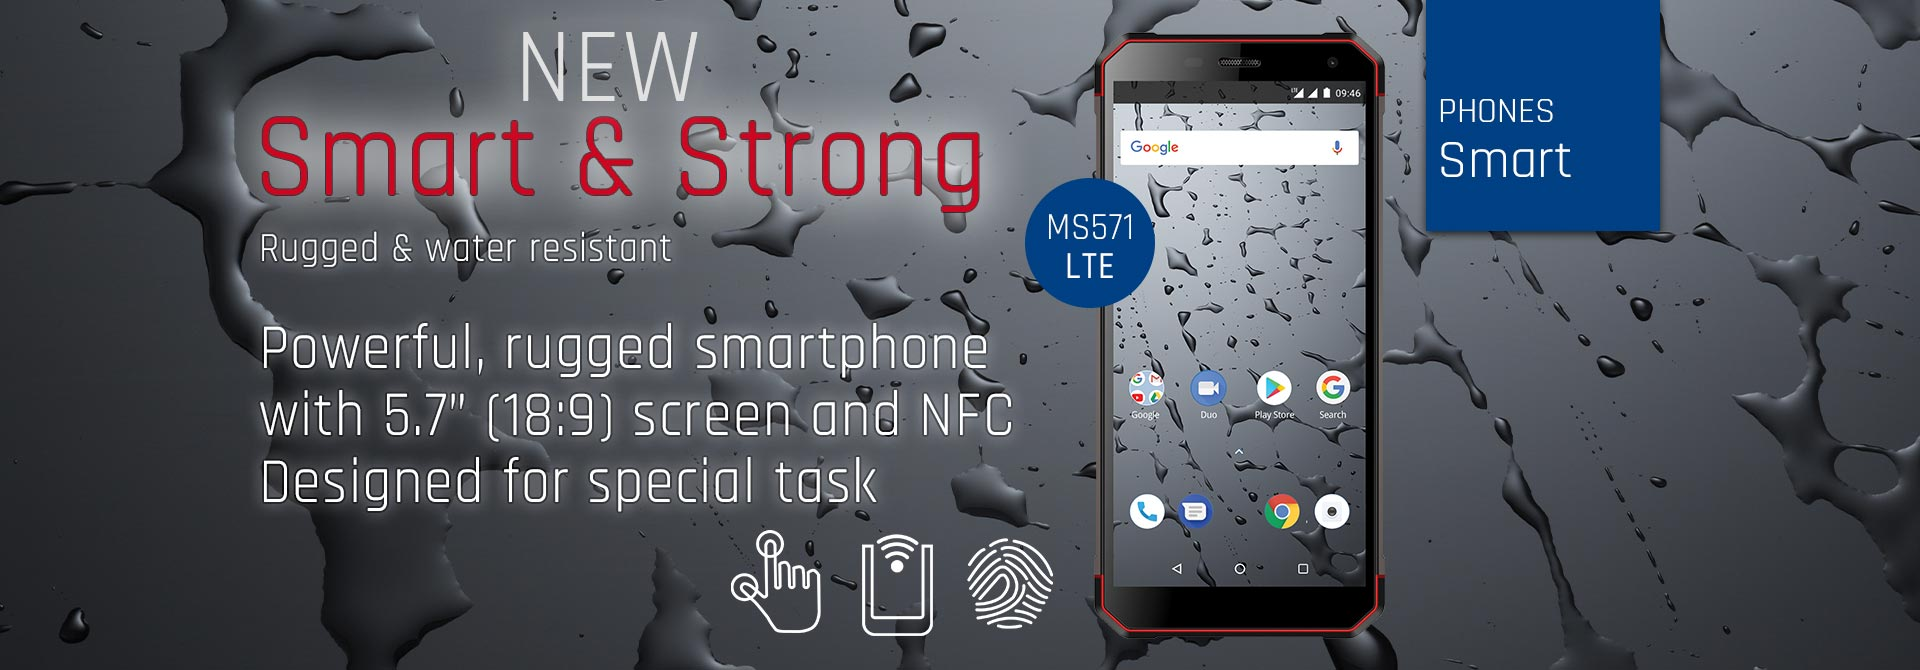 Nowy telefon Smart & Strong MS571 LTE